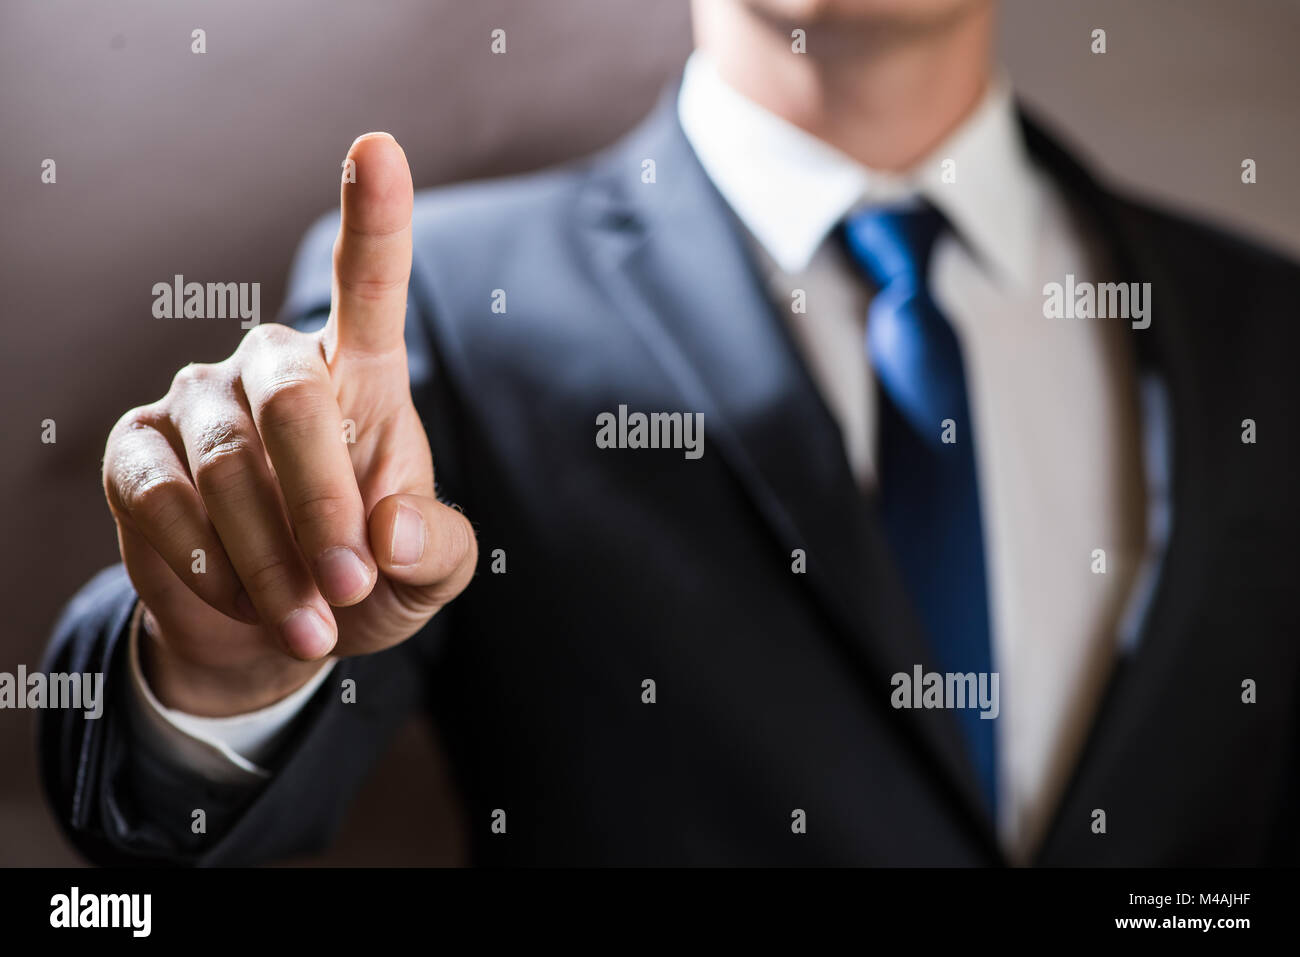 Businessman click on virtual touchscreen. Futuristic IT presentation background - Stock Image